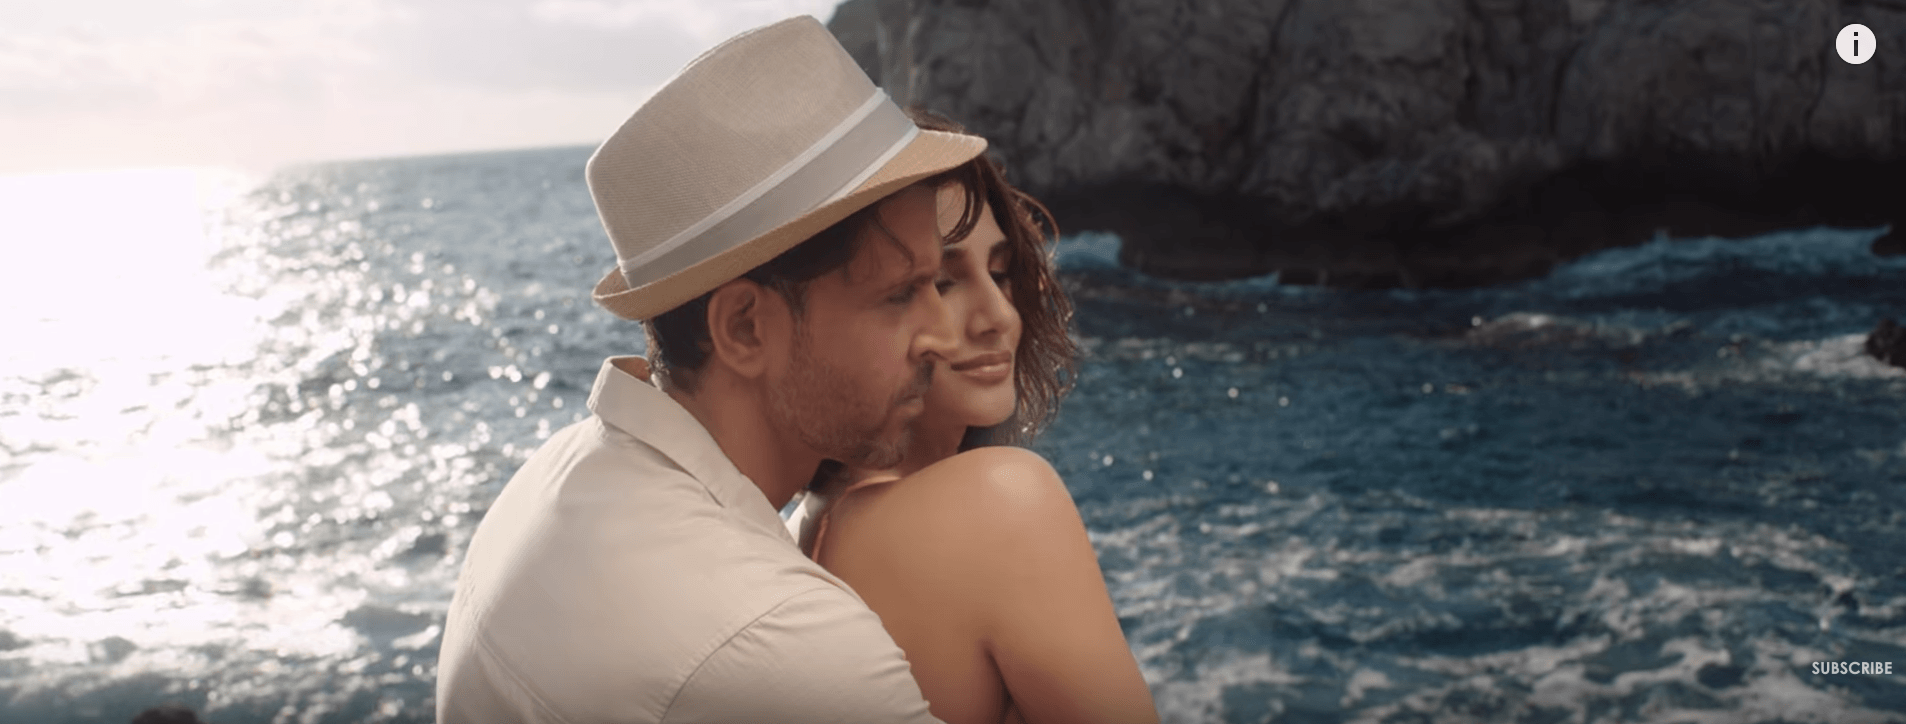 War Movie Ghungroo Video Song Released - A sensual romance